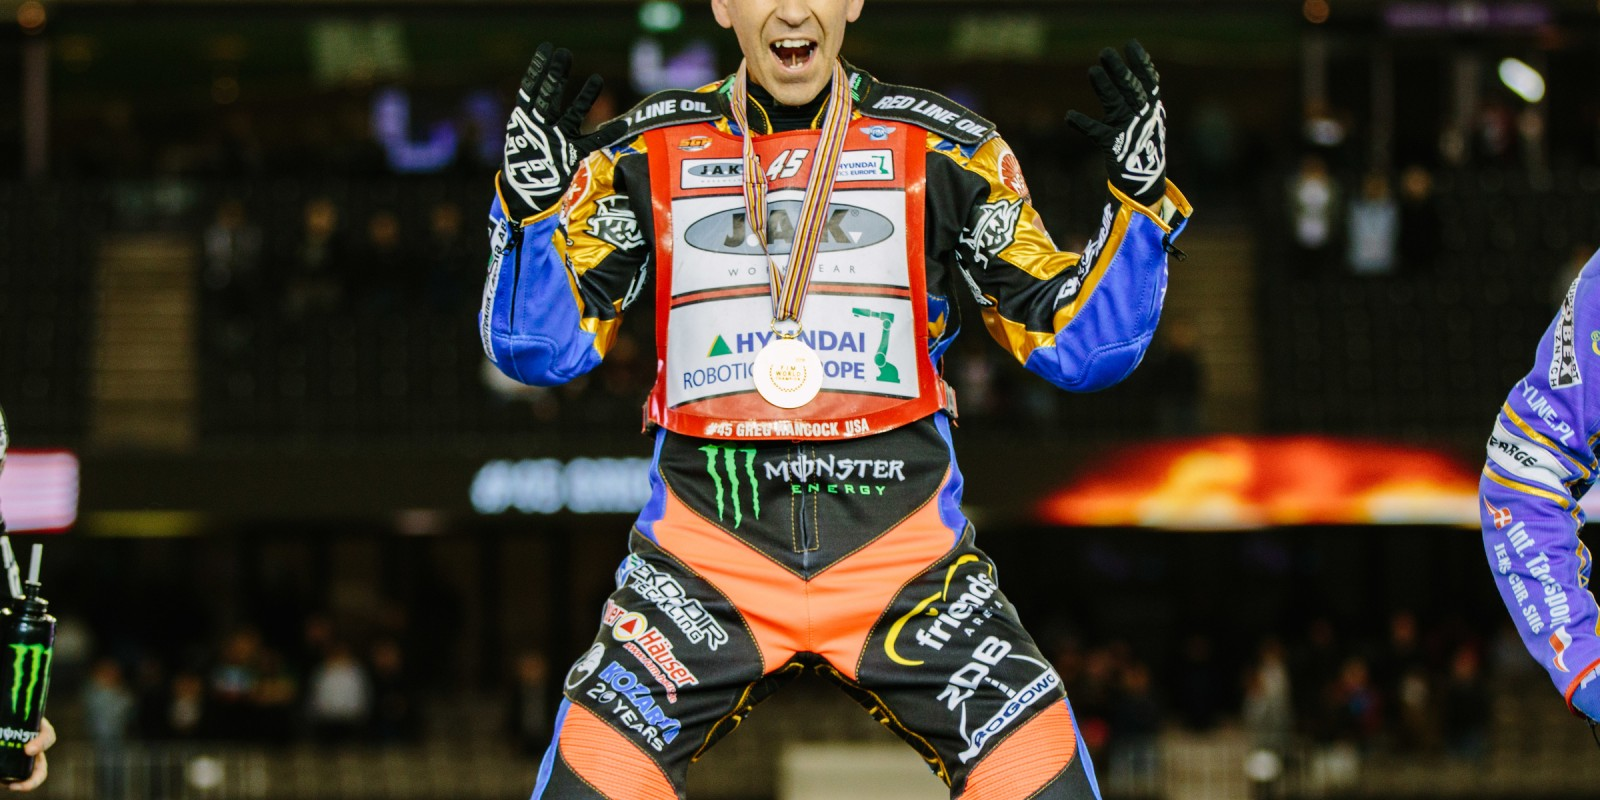 Images from the final round of the 2016 SGP season